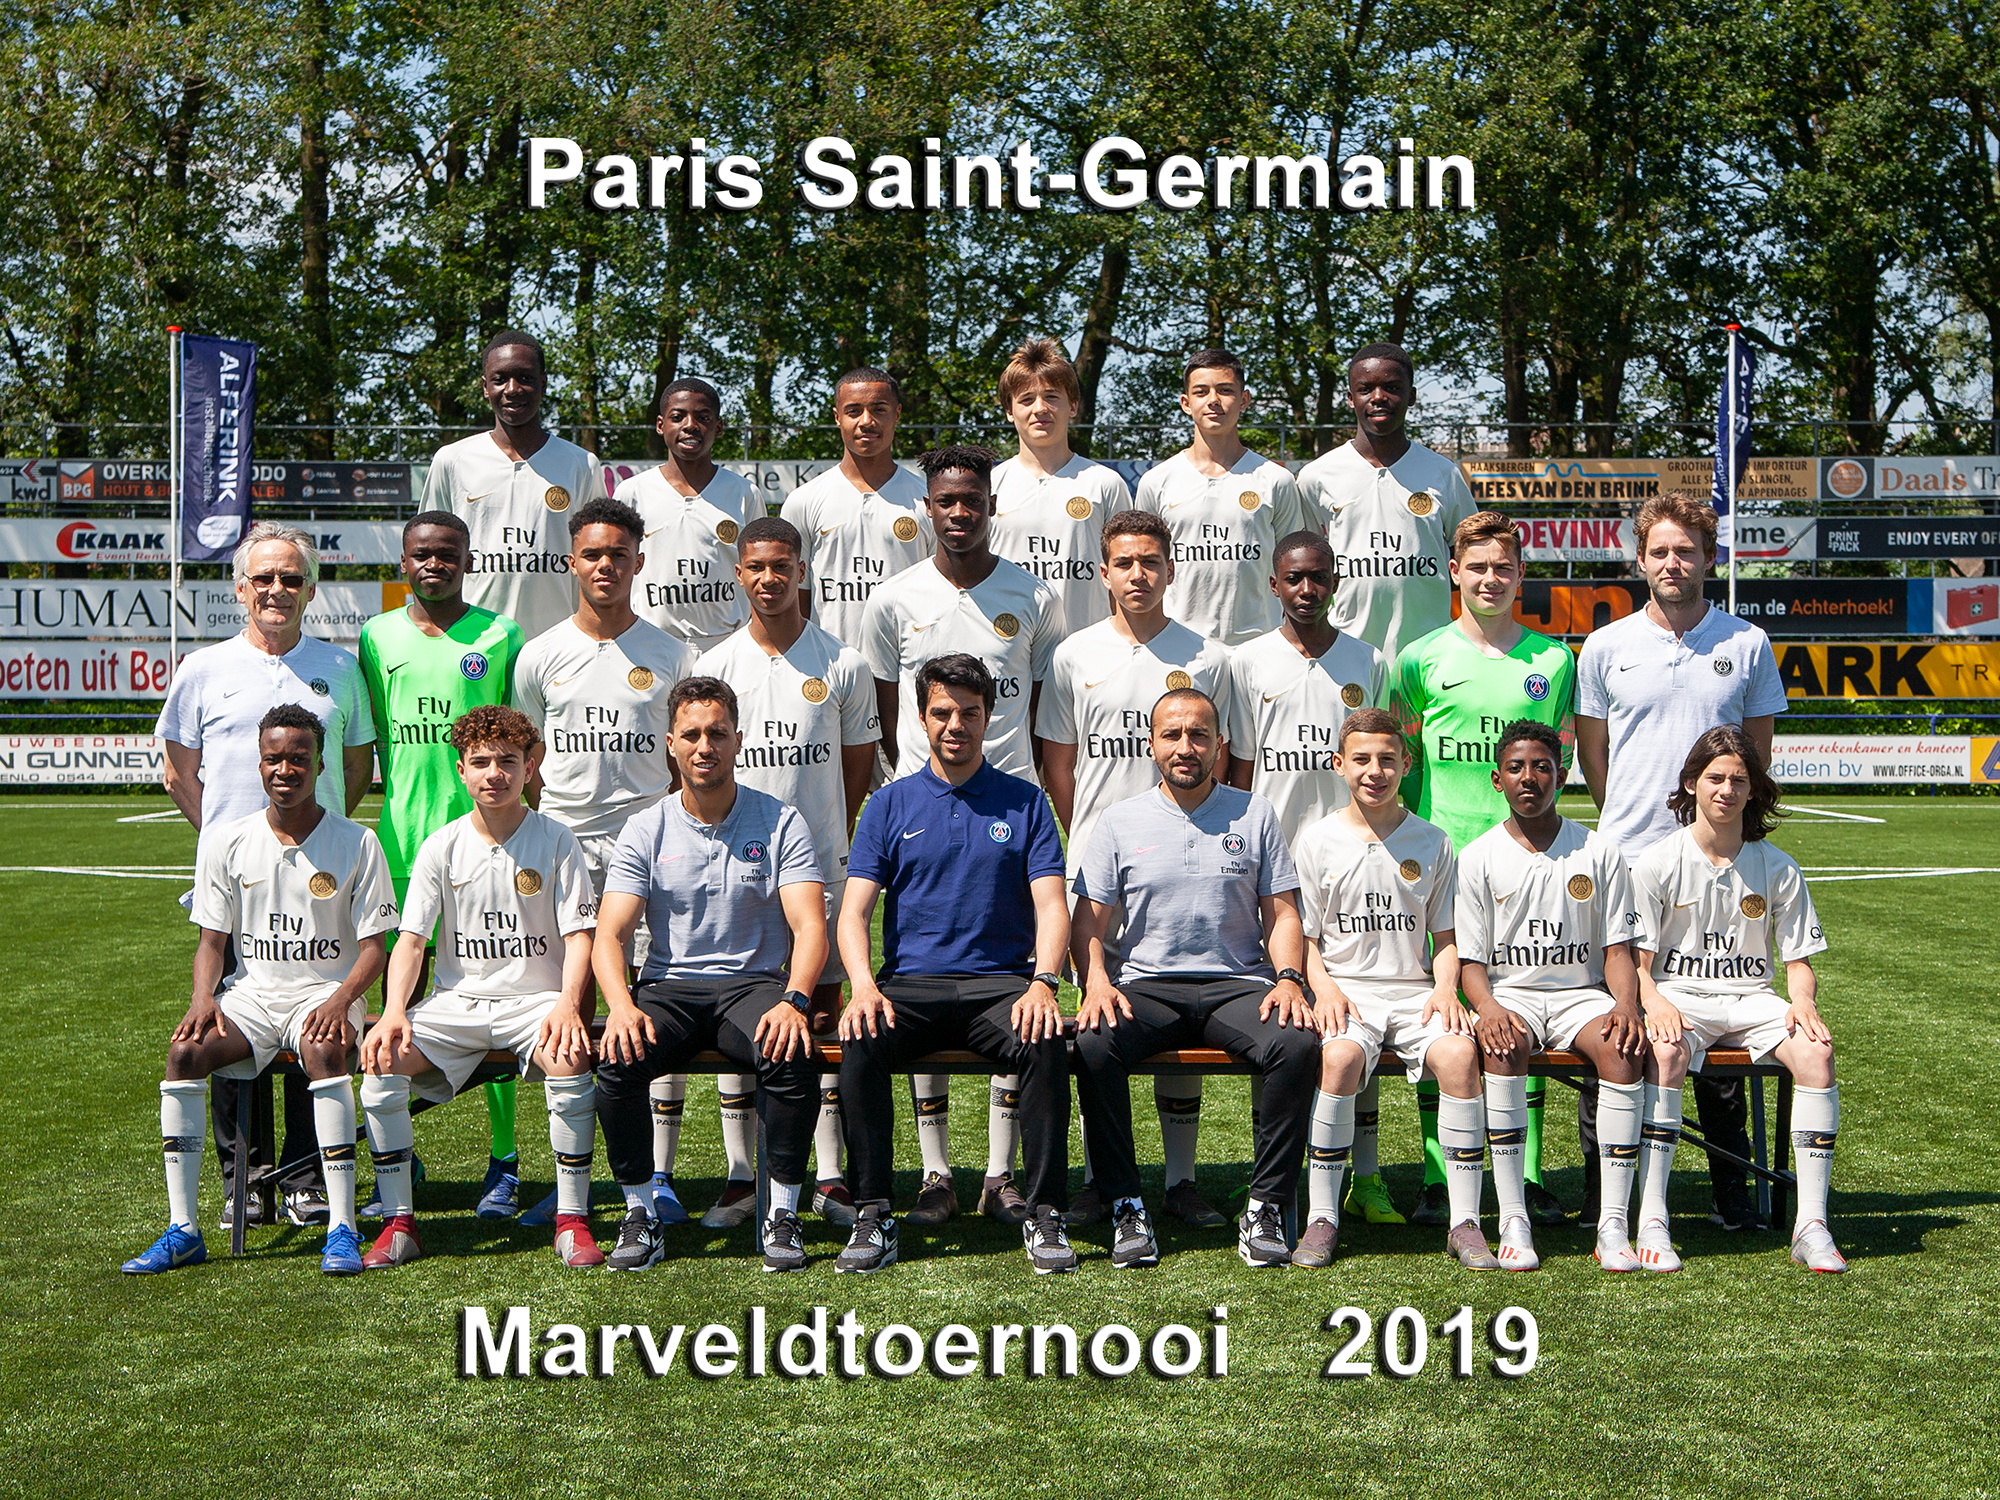 Marveld Tournament 2019 - Team Paris Saint-Germain